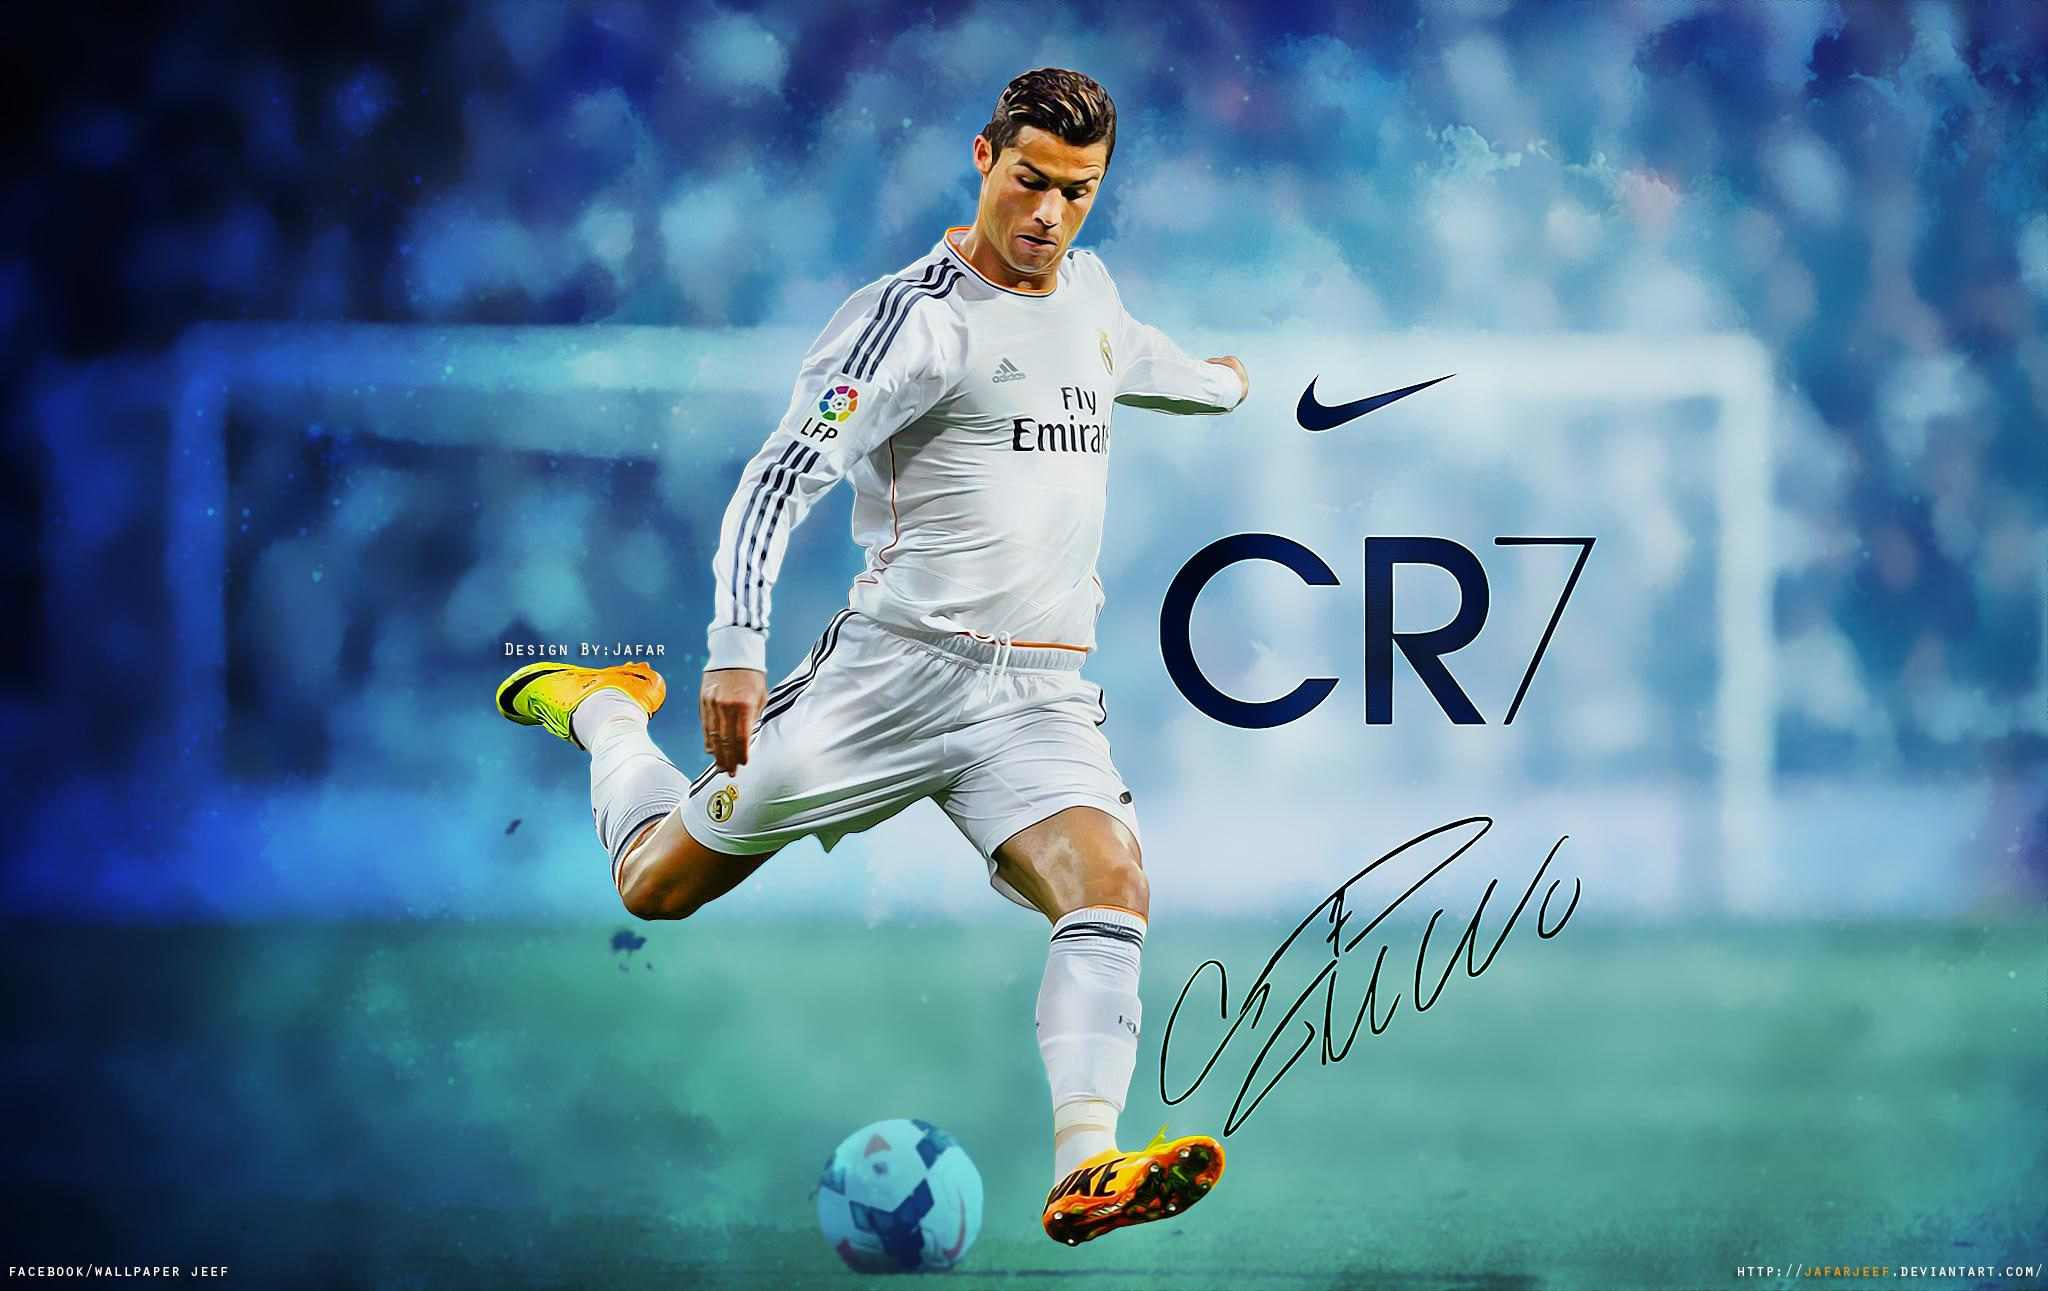 Real-Madrid-star-Cristiano-Ronaldo-will-open-his-CR7-footwear-brand-in-Alexandria